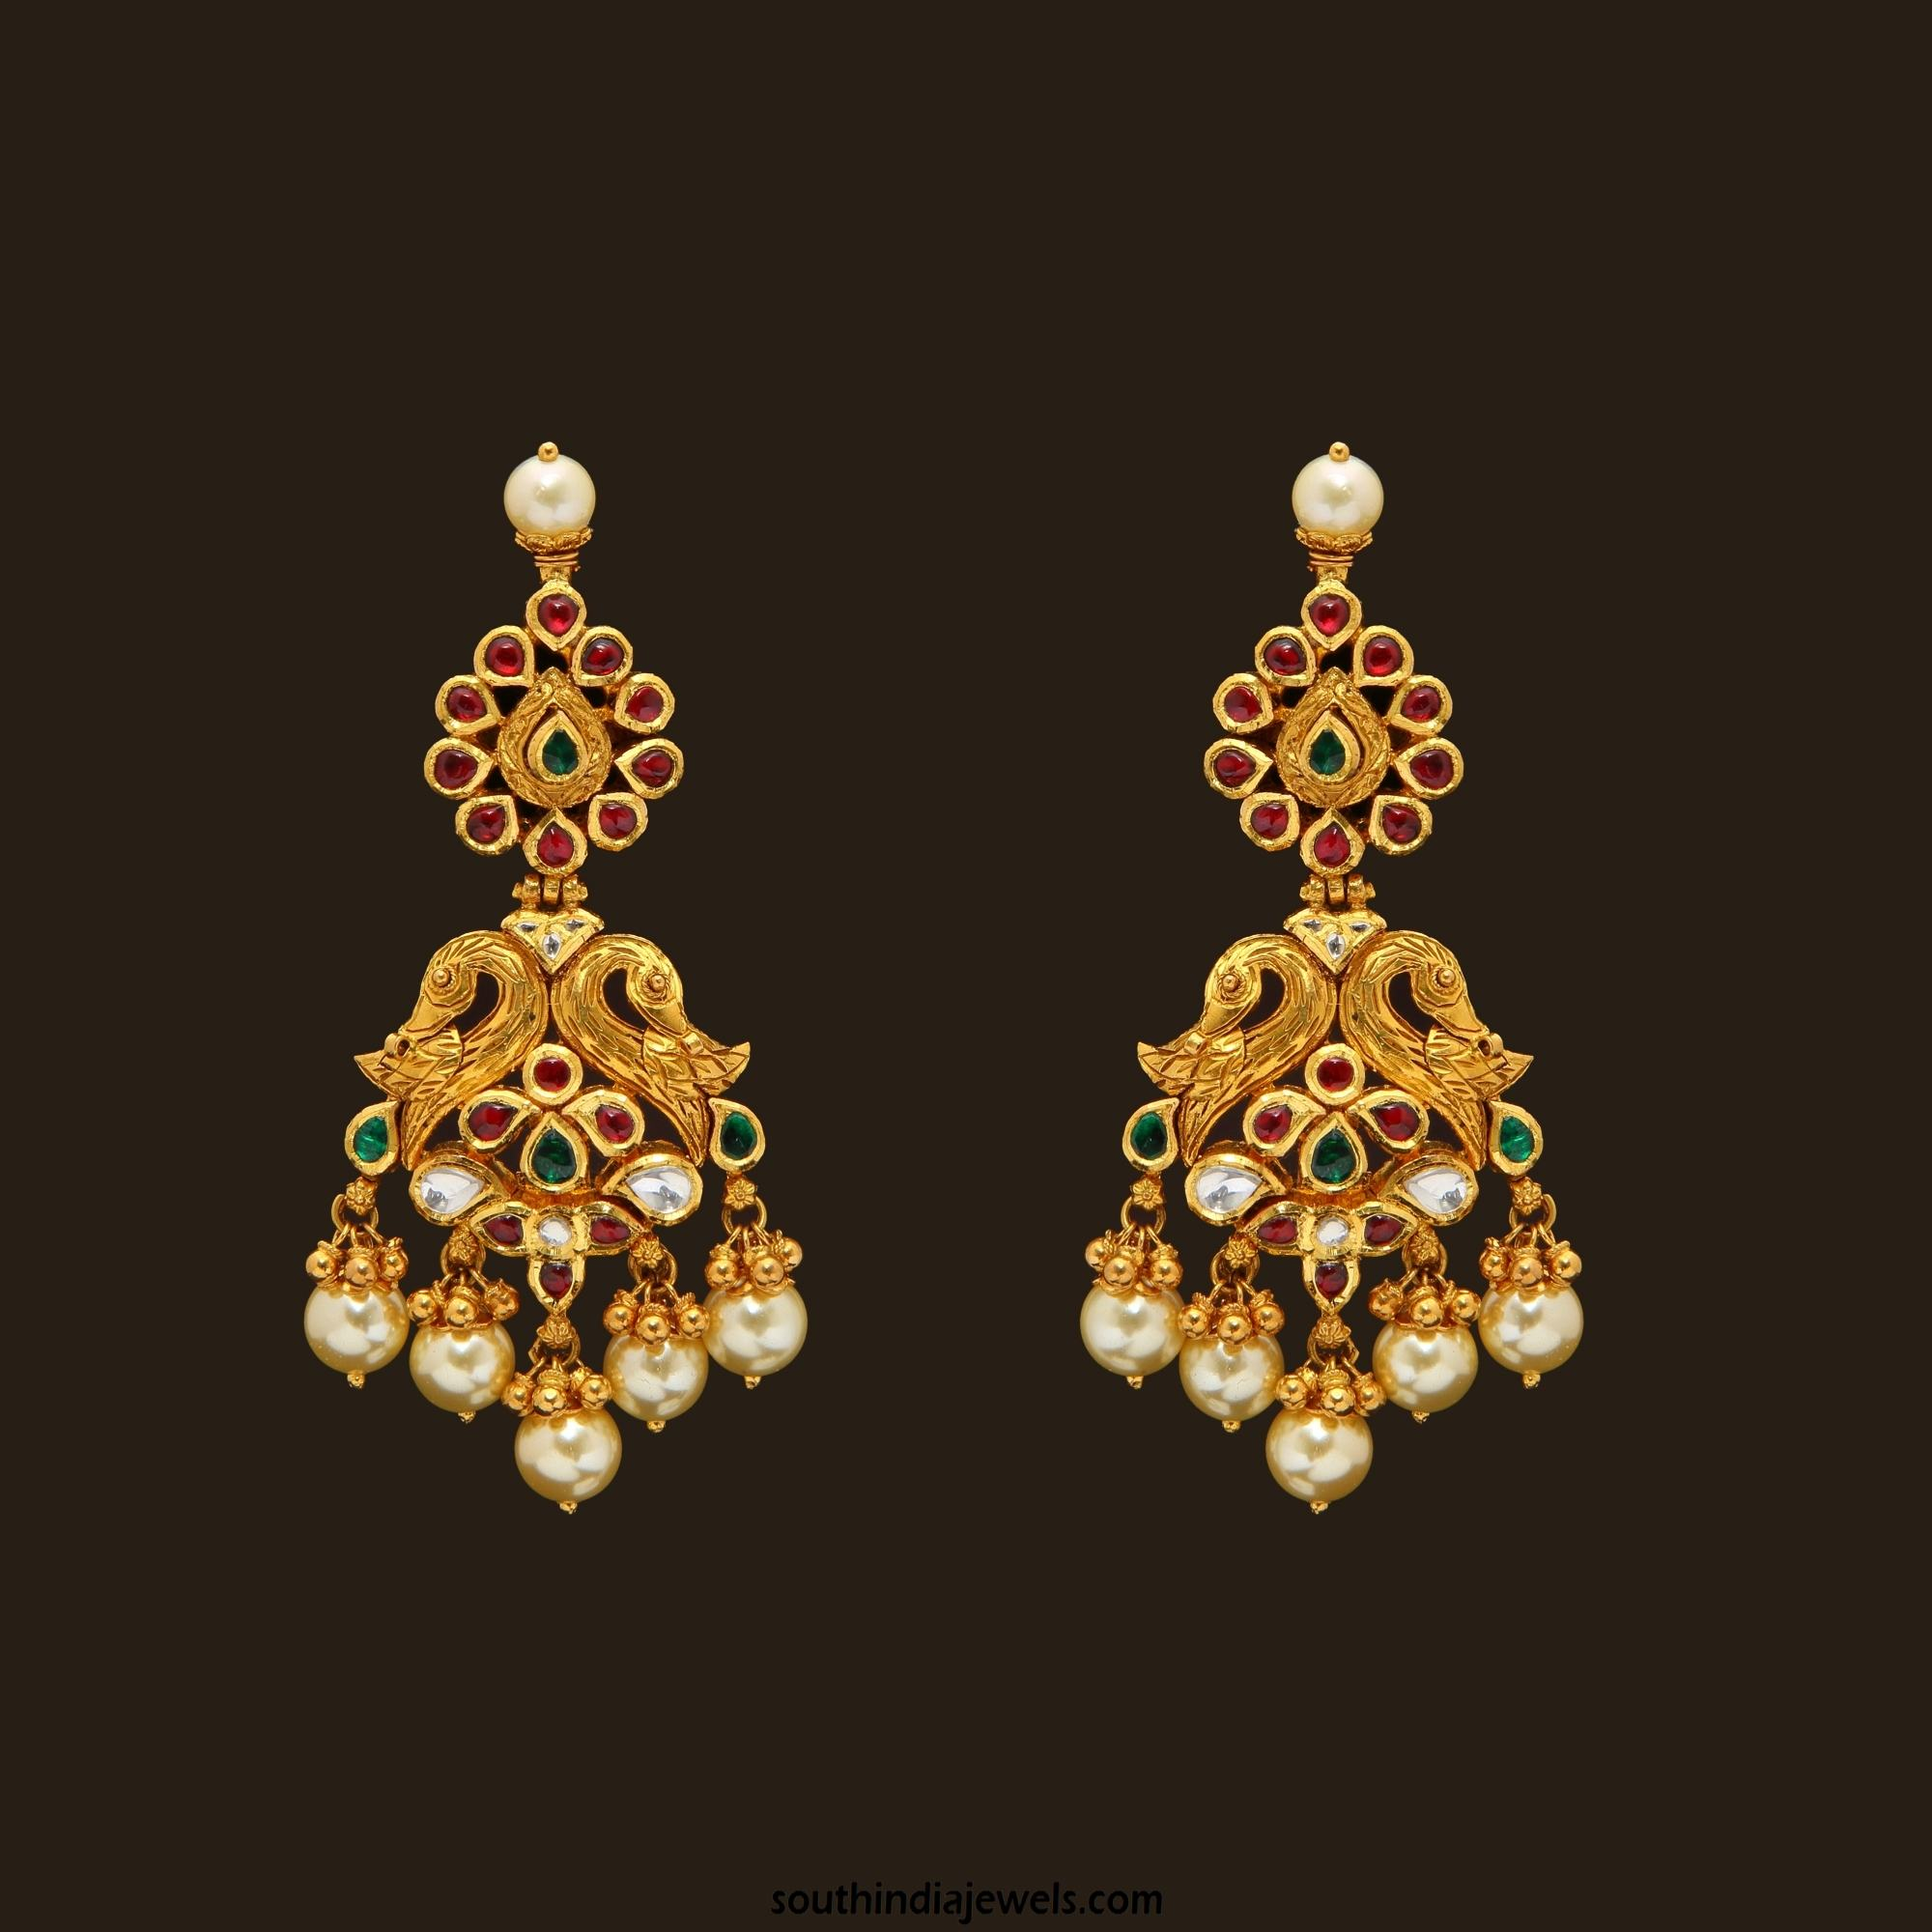 Gold Antique Pea Earrings From Vbj